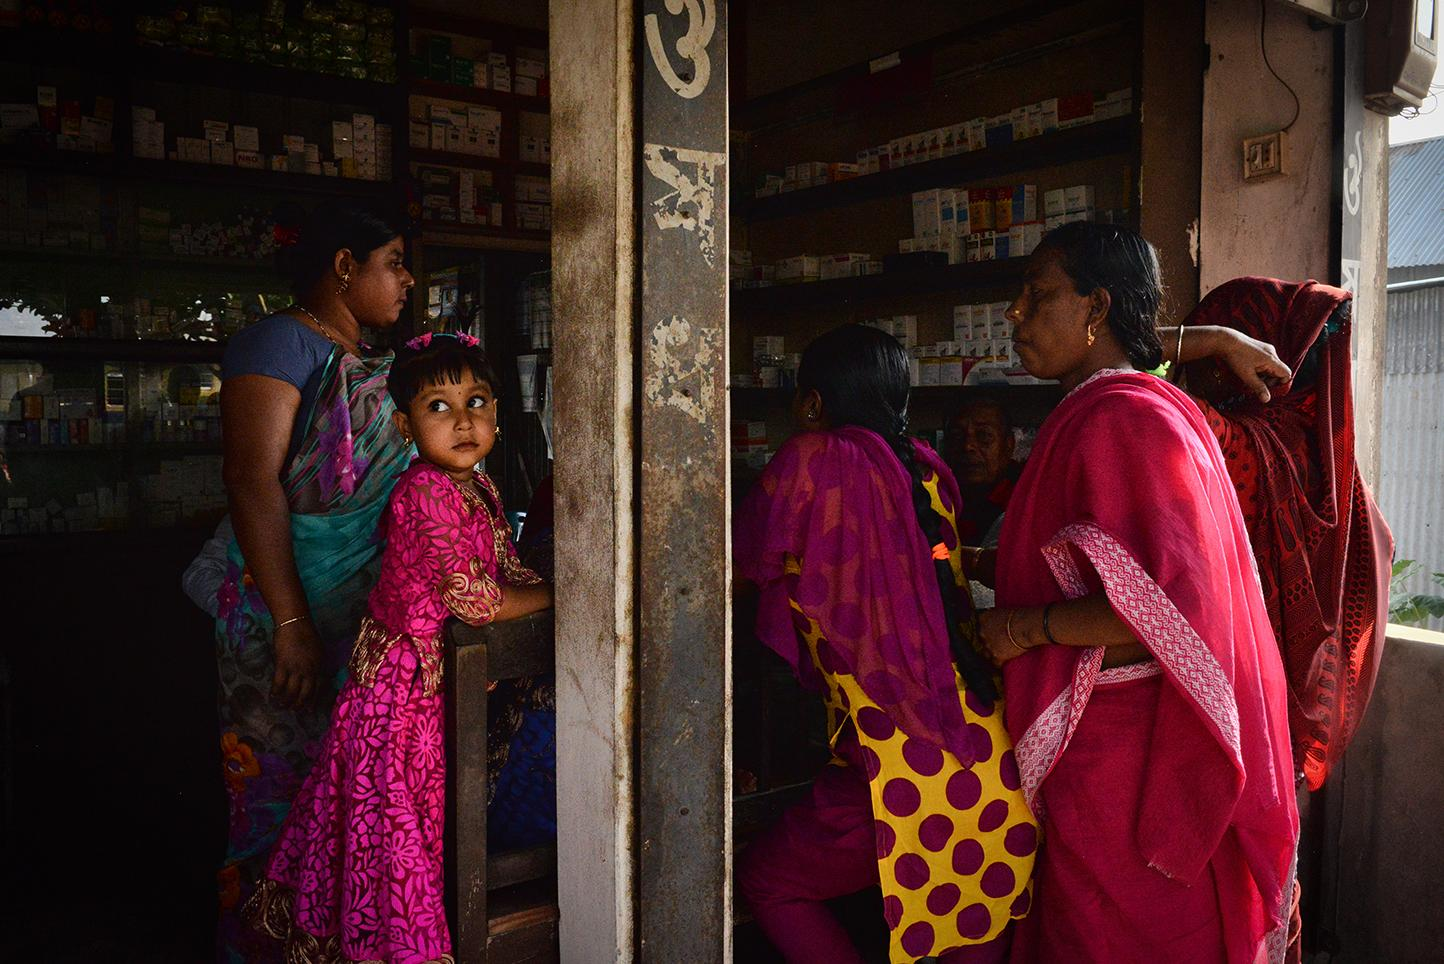 Women with their children buy steroids at a pharmacy just outside of Daulatadia Brothel in Daulatadia, Rajbari, Bangladesh. Steroids plump up the face, which some in Bangladesh find a round face to be a sign of beauty. Daulatadia is considered one of the largest brothels in the world and serves roughly 2500-3000 men daily. Bangladesh is the only Muslim country in the world where prostitution is legal. Though legally prostitutes must be at least 18 years of age many are tricked into the profession at a very young age.